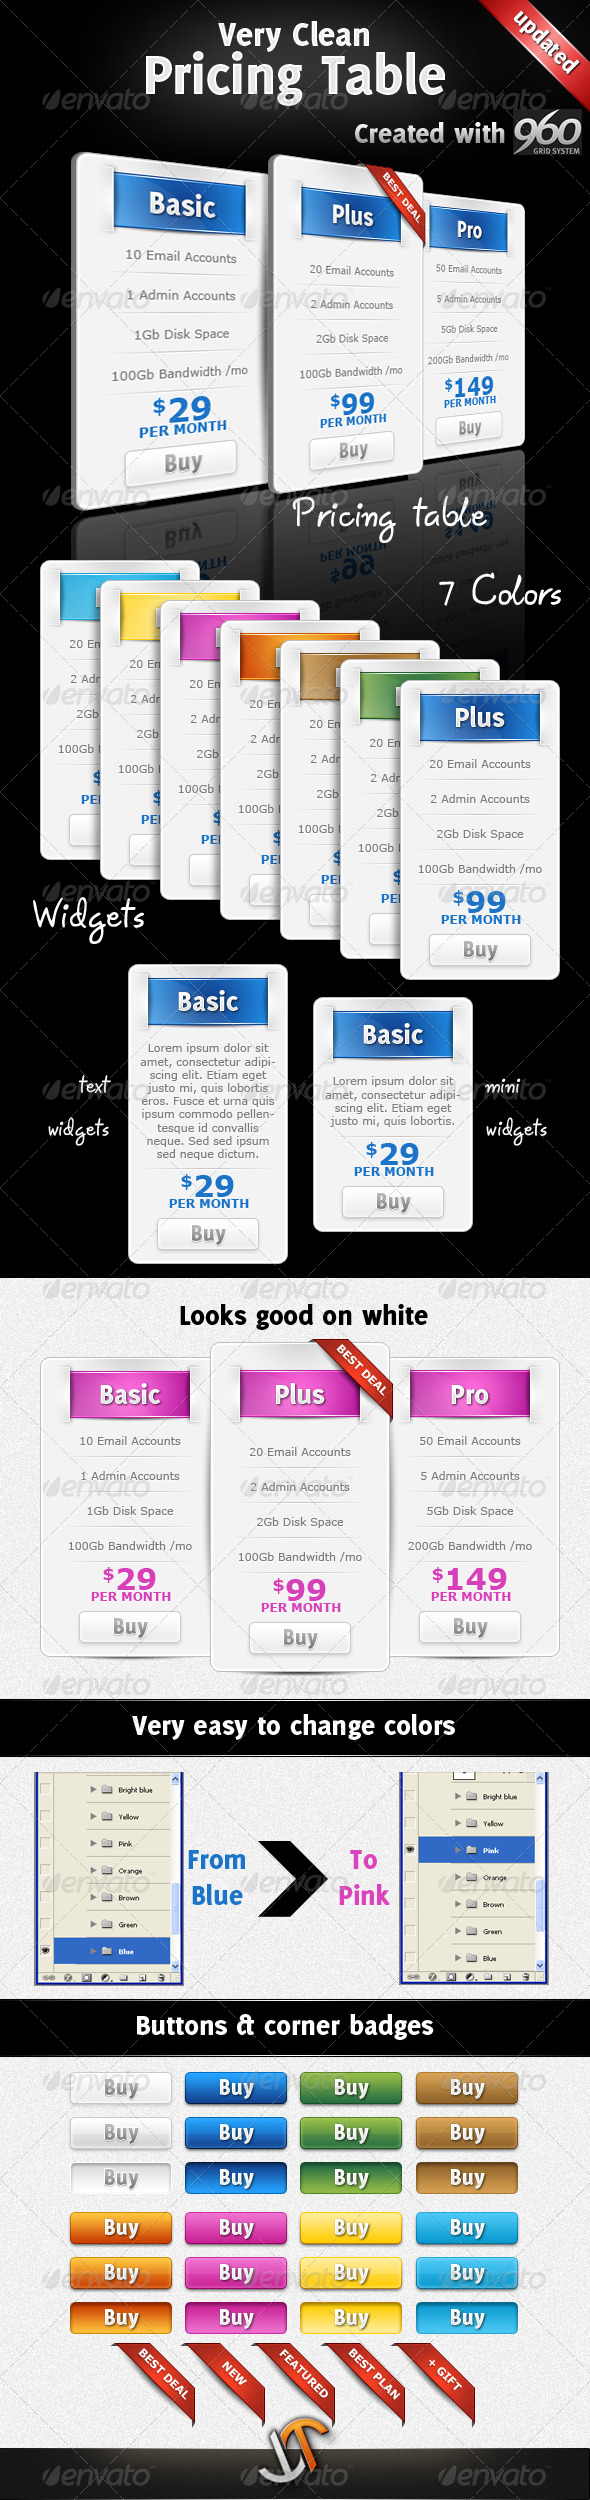 GraphicRiver Very Clean Pricing Table with Widgets and 7 Colors 134695